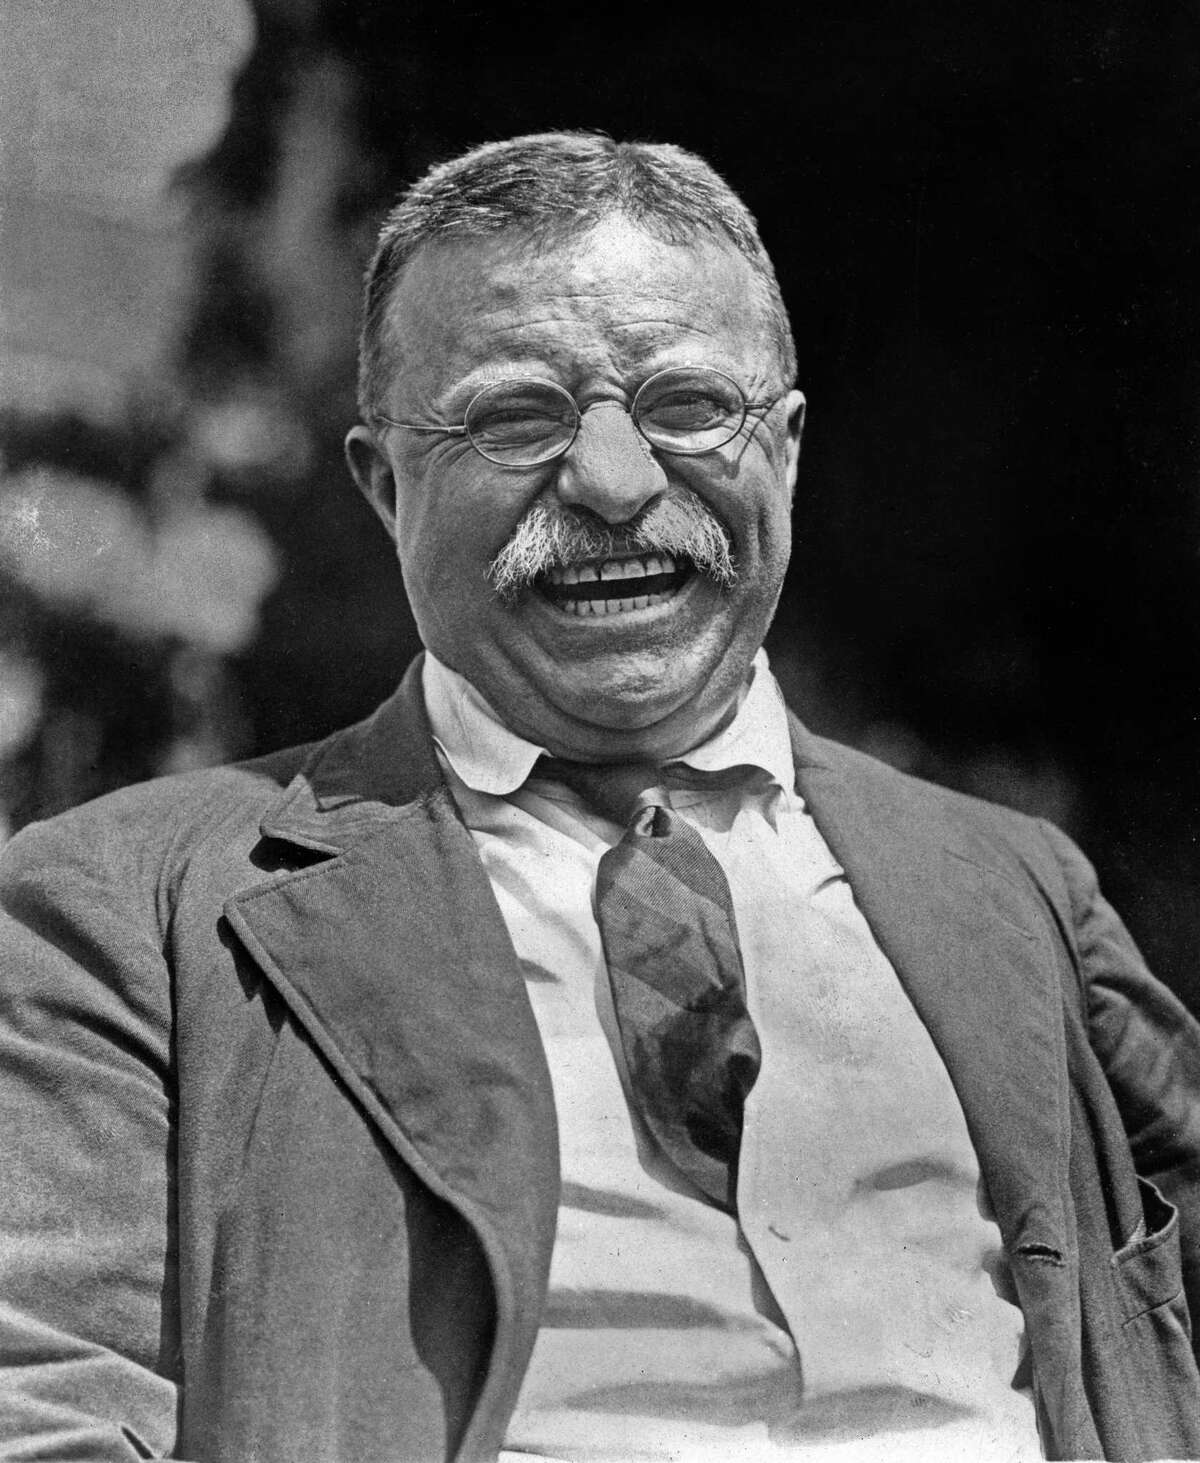 This photo provided by Brown Brothers shows Teddy Roosevelt at his Oyster Bay, N.Y., home in 1912. A Pennsylvania-based stock photography company founded in Manhattan 110 years ago is looking to sell its collection of more than 1 million photographs and negatives, including tens of thousands of black-and-white images of New York City before World War II.